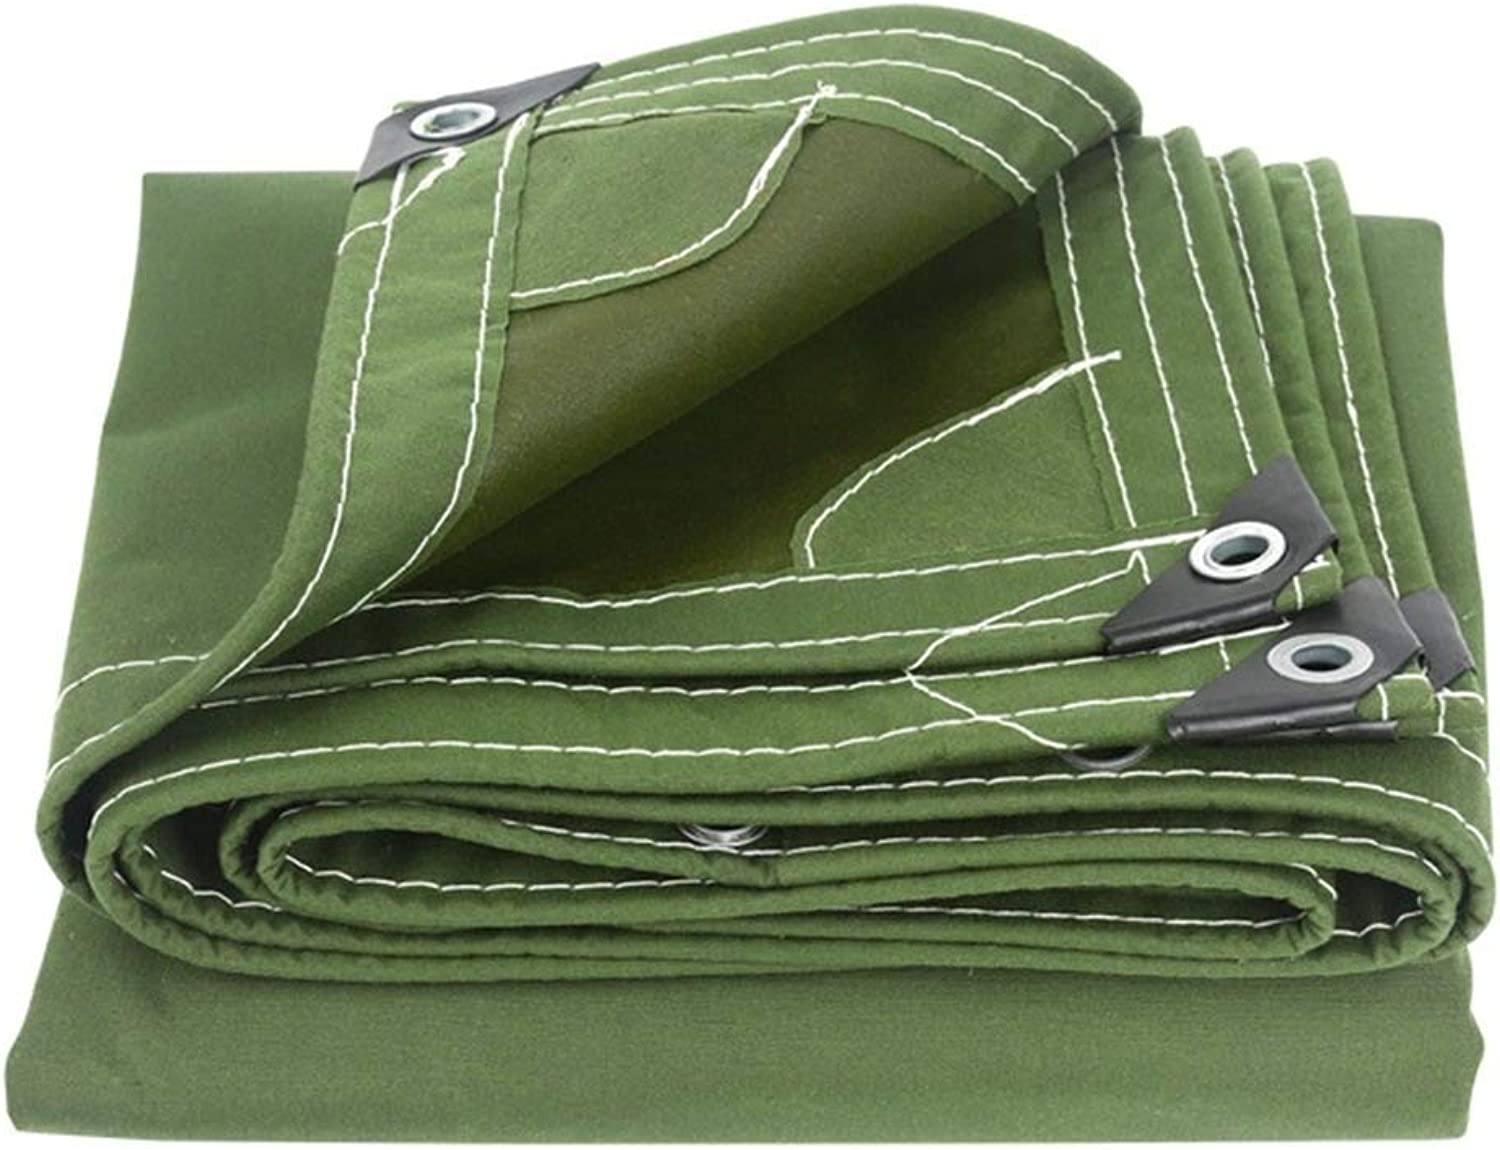 Tarp Strong Robust Tarpaulin Green Waterproof Cover Ground Sheet 1.5m 6m Metre Size